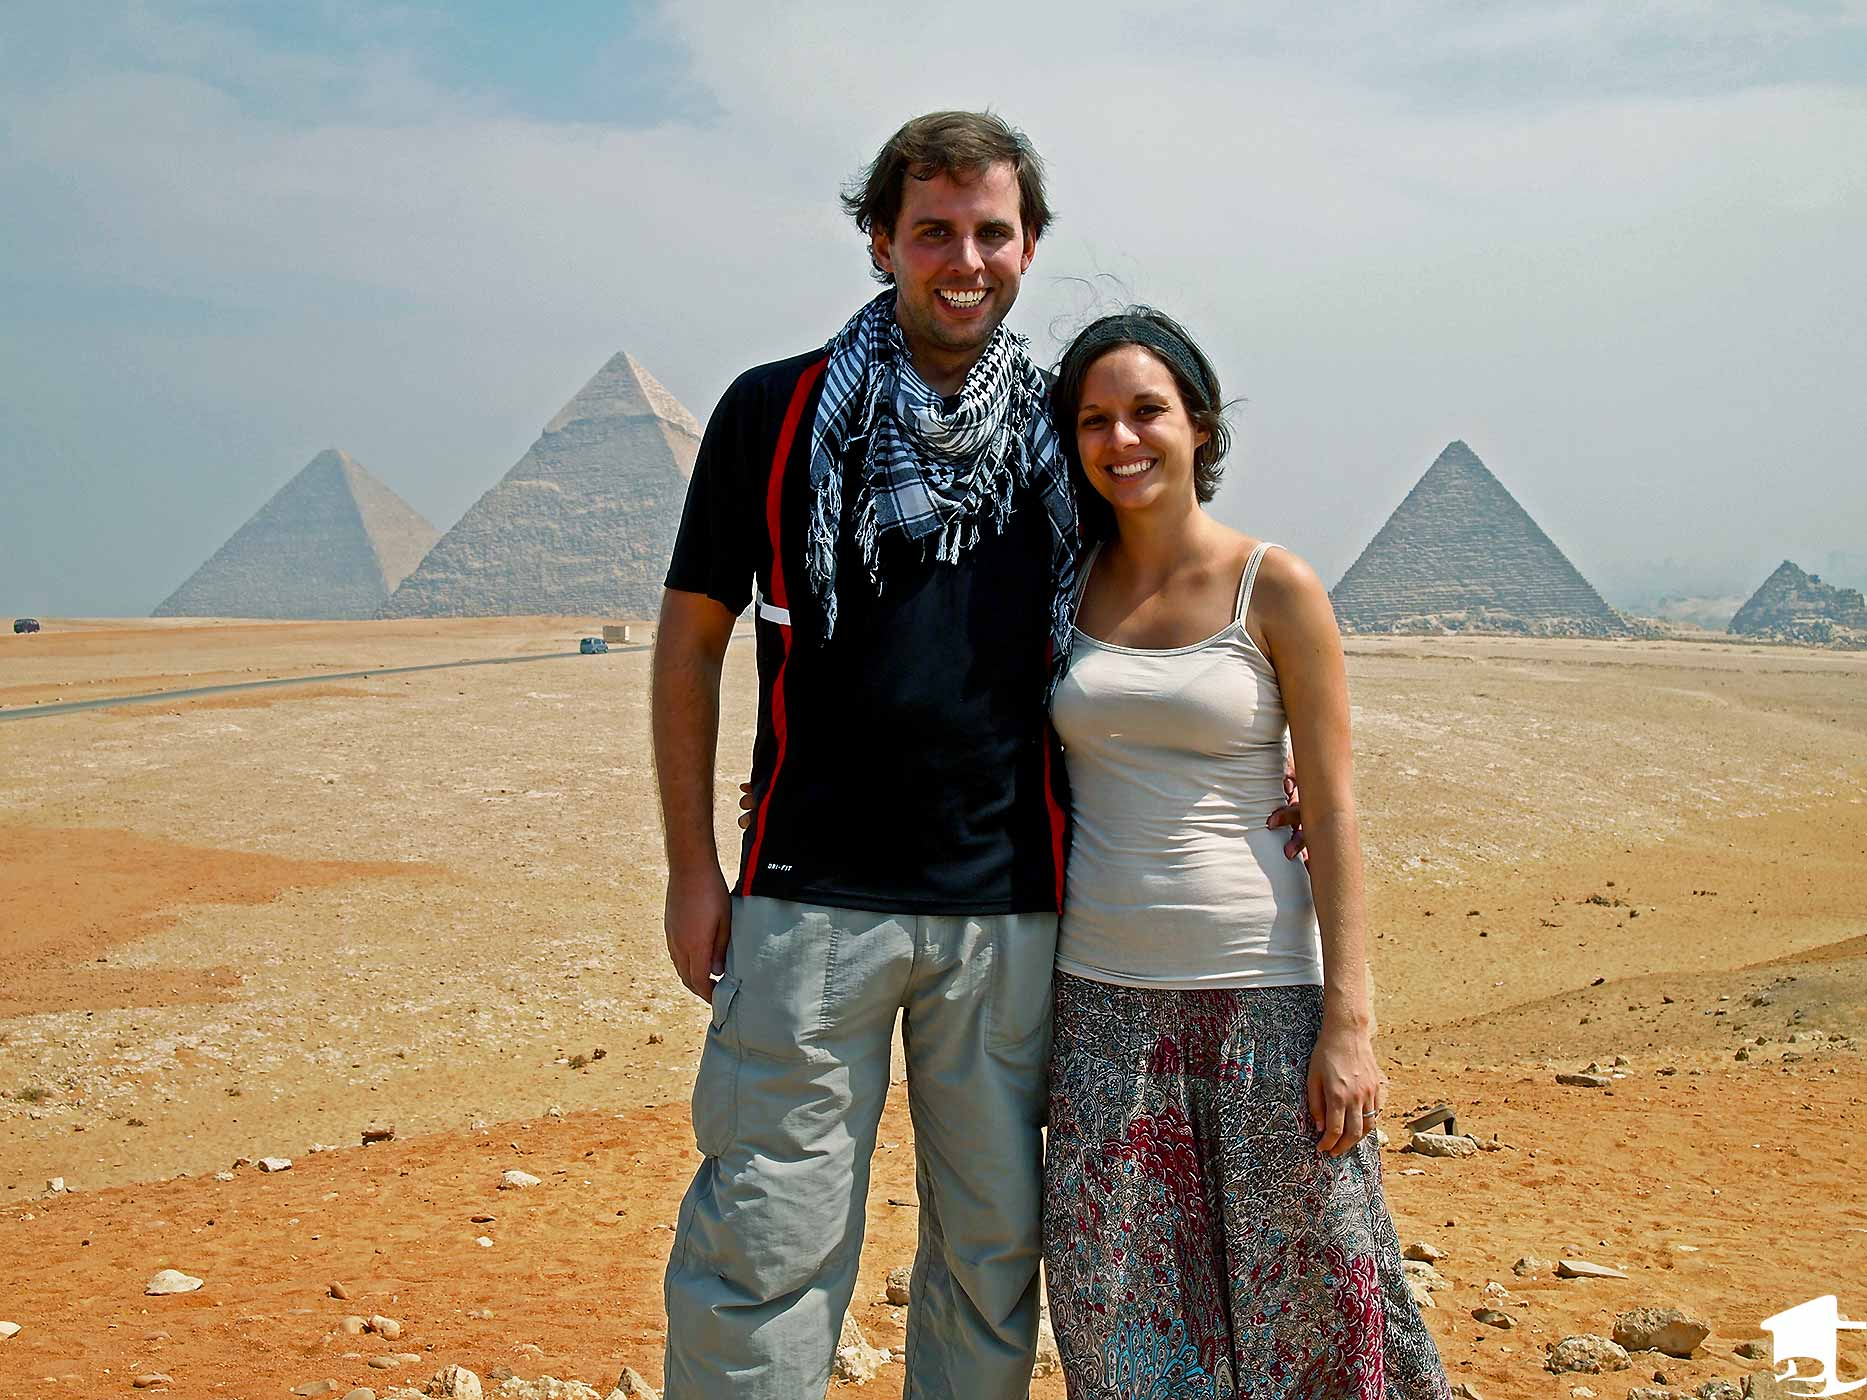 Mike and Tara at the Giza Pyramids